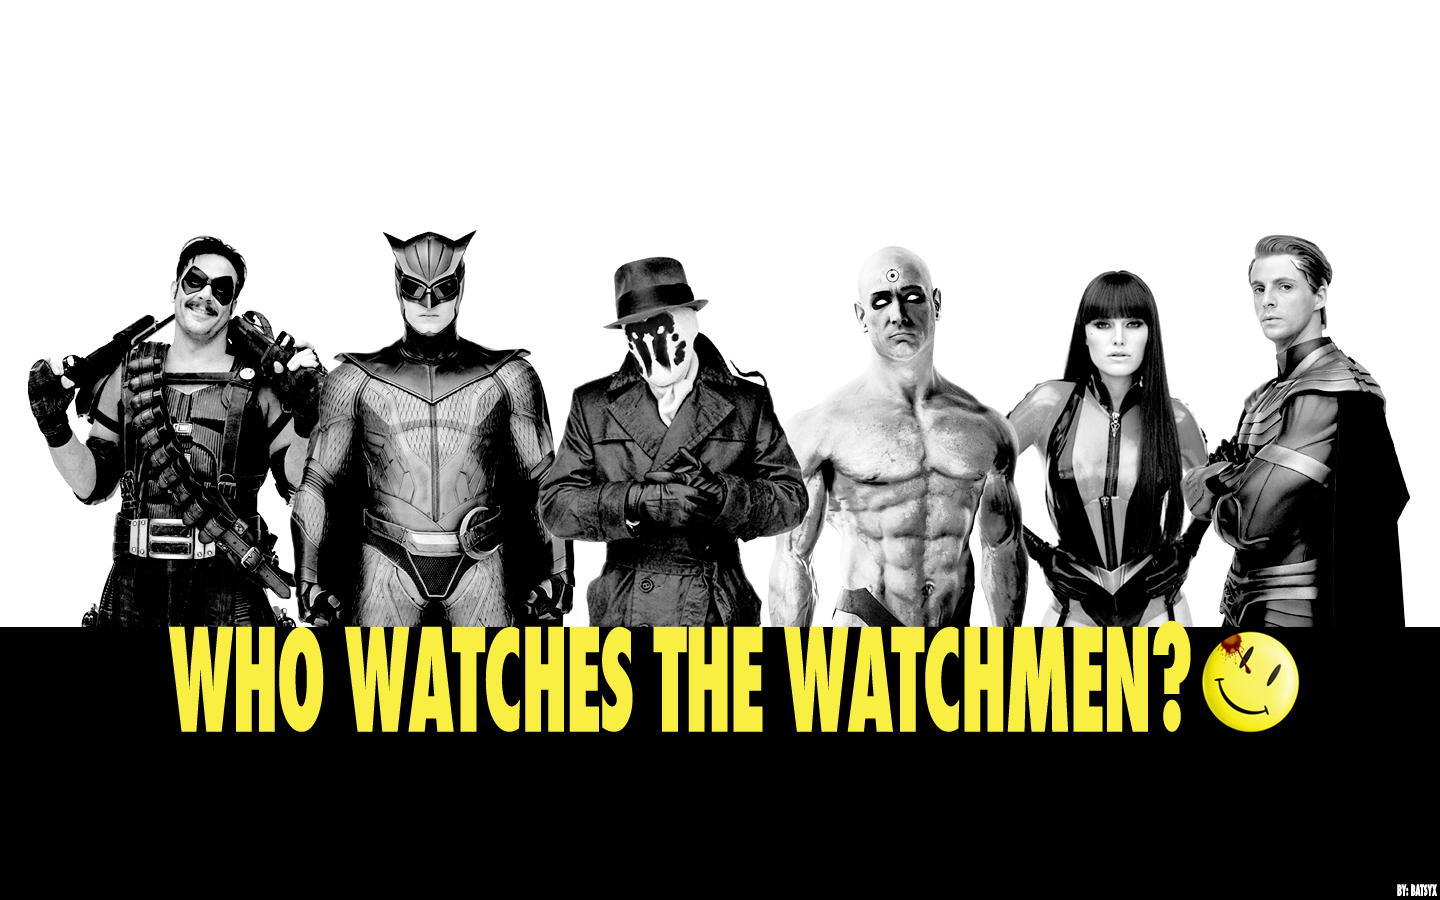 Who Watches the Watchmen? - Watchmen Wallpaper (14960175) - Fanpop